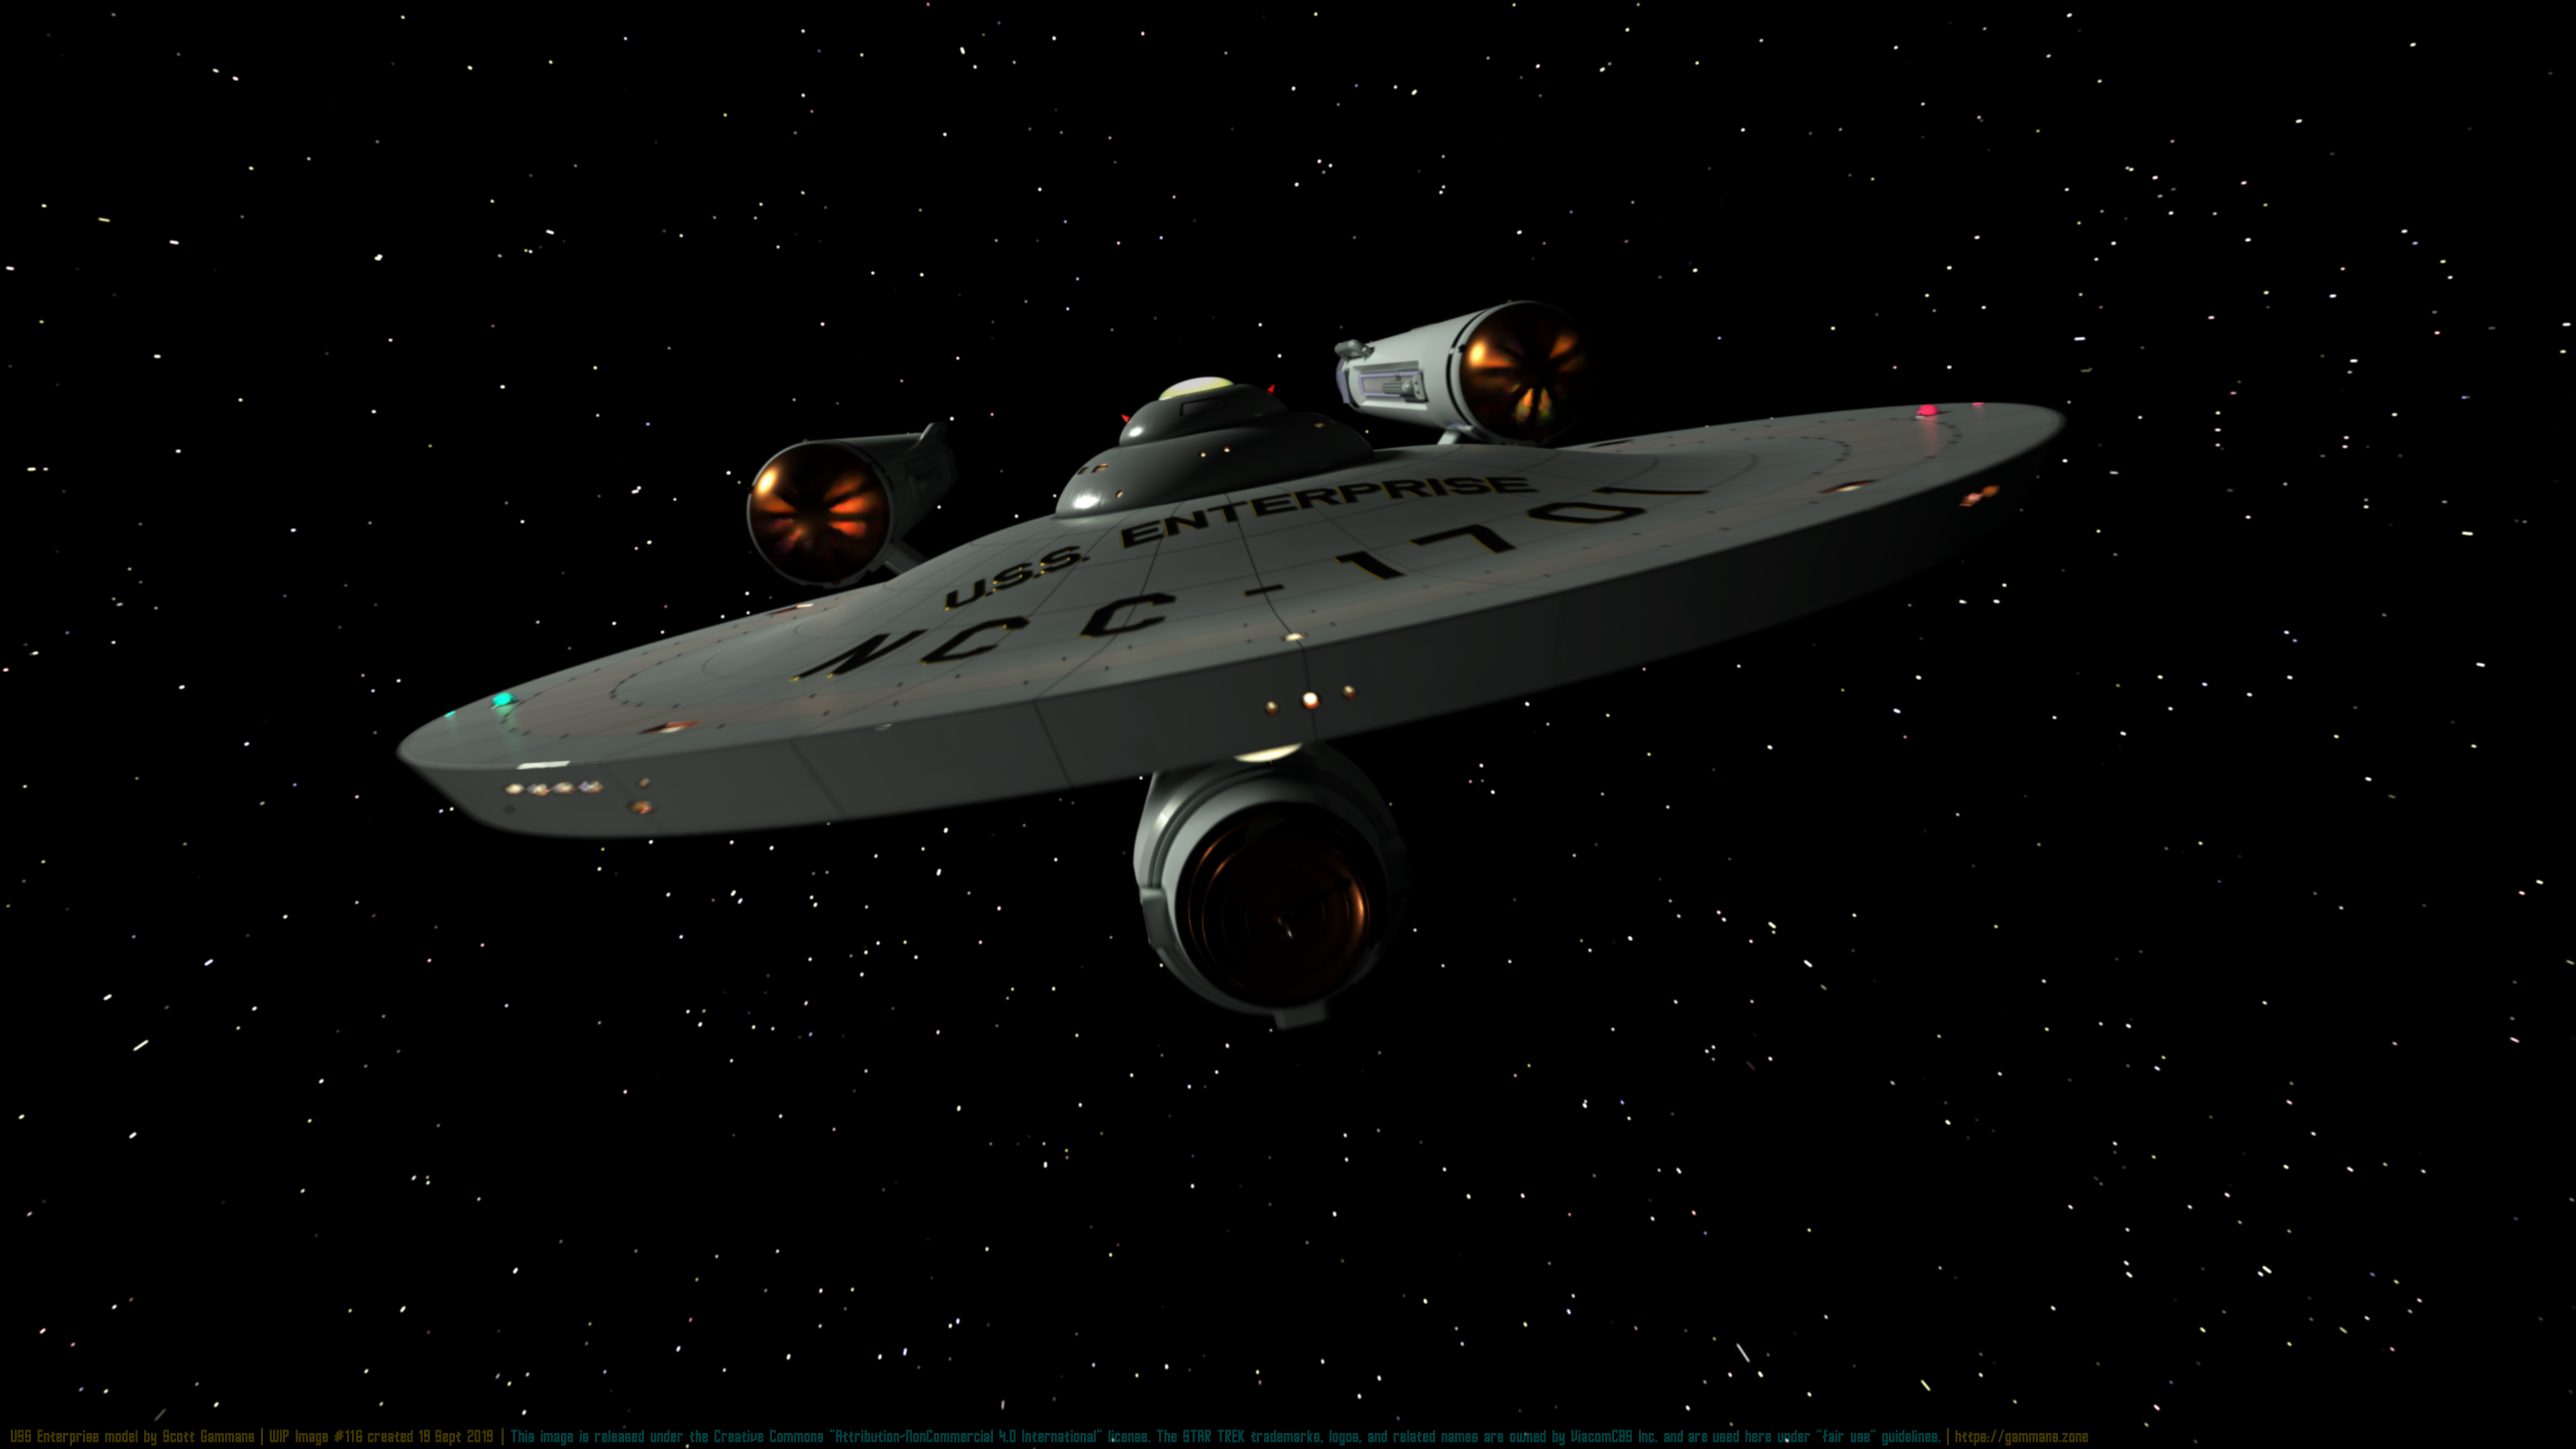 USS Enterprise WIP Test #116 September 19, 2019